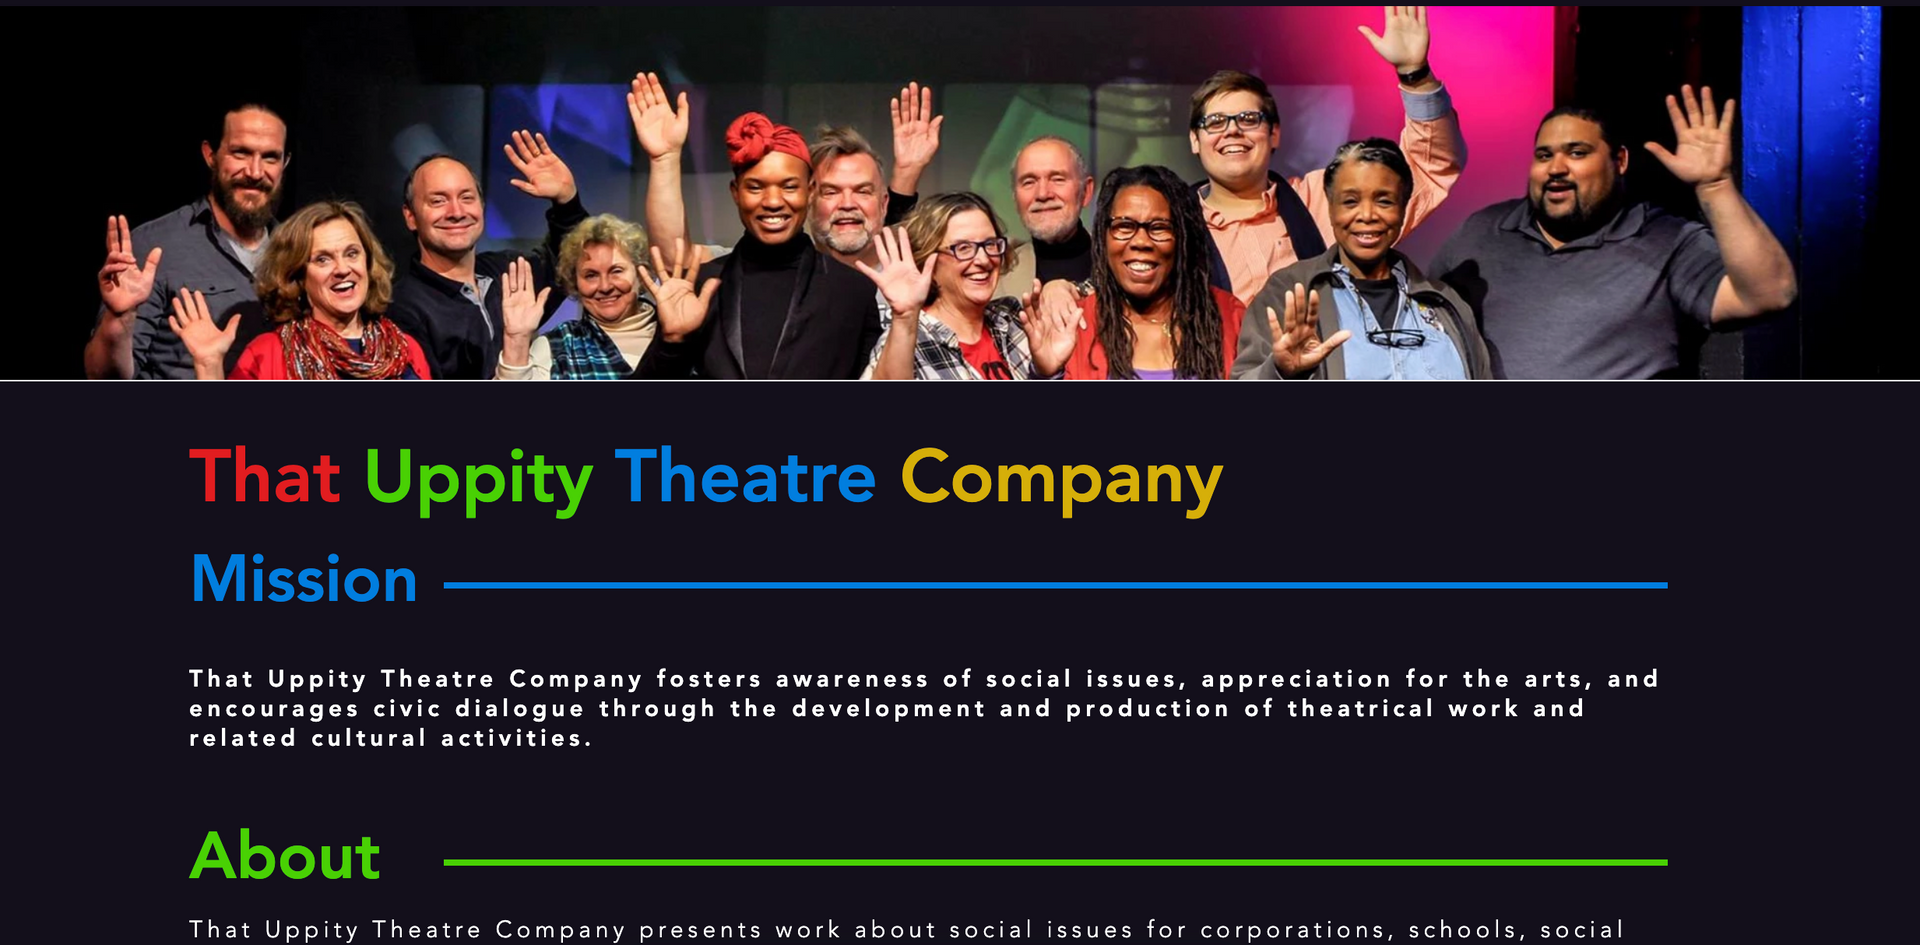 That Uppity Theatre Company About Page